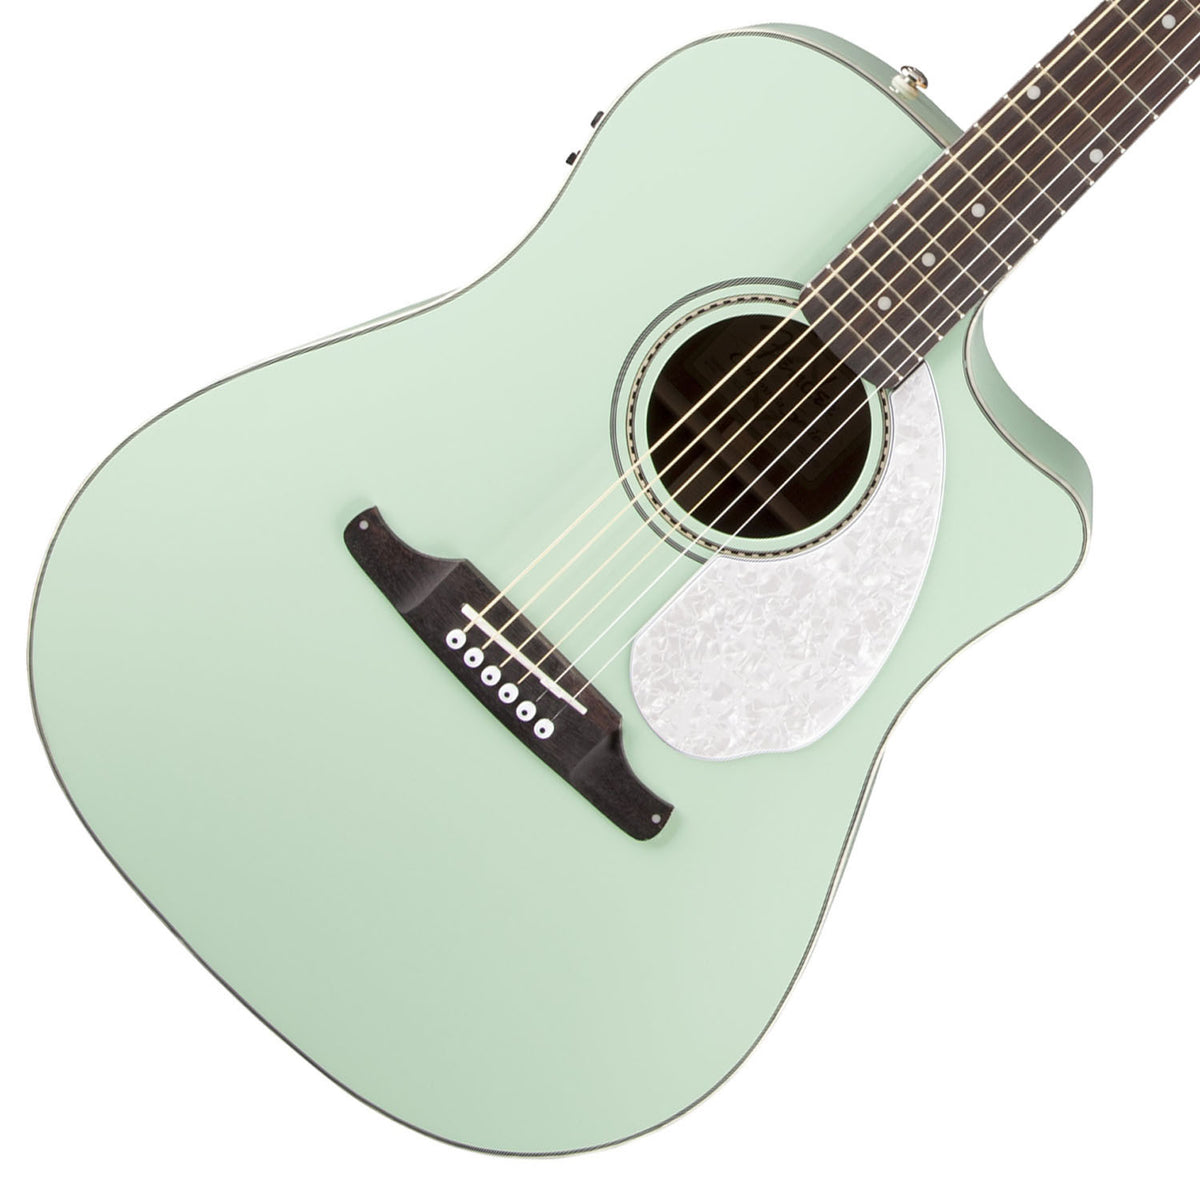 Fender Dreadnaught Surf Green - Garrett Park Guitars  - 1